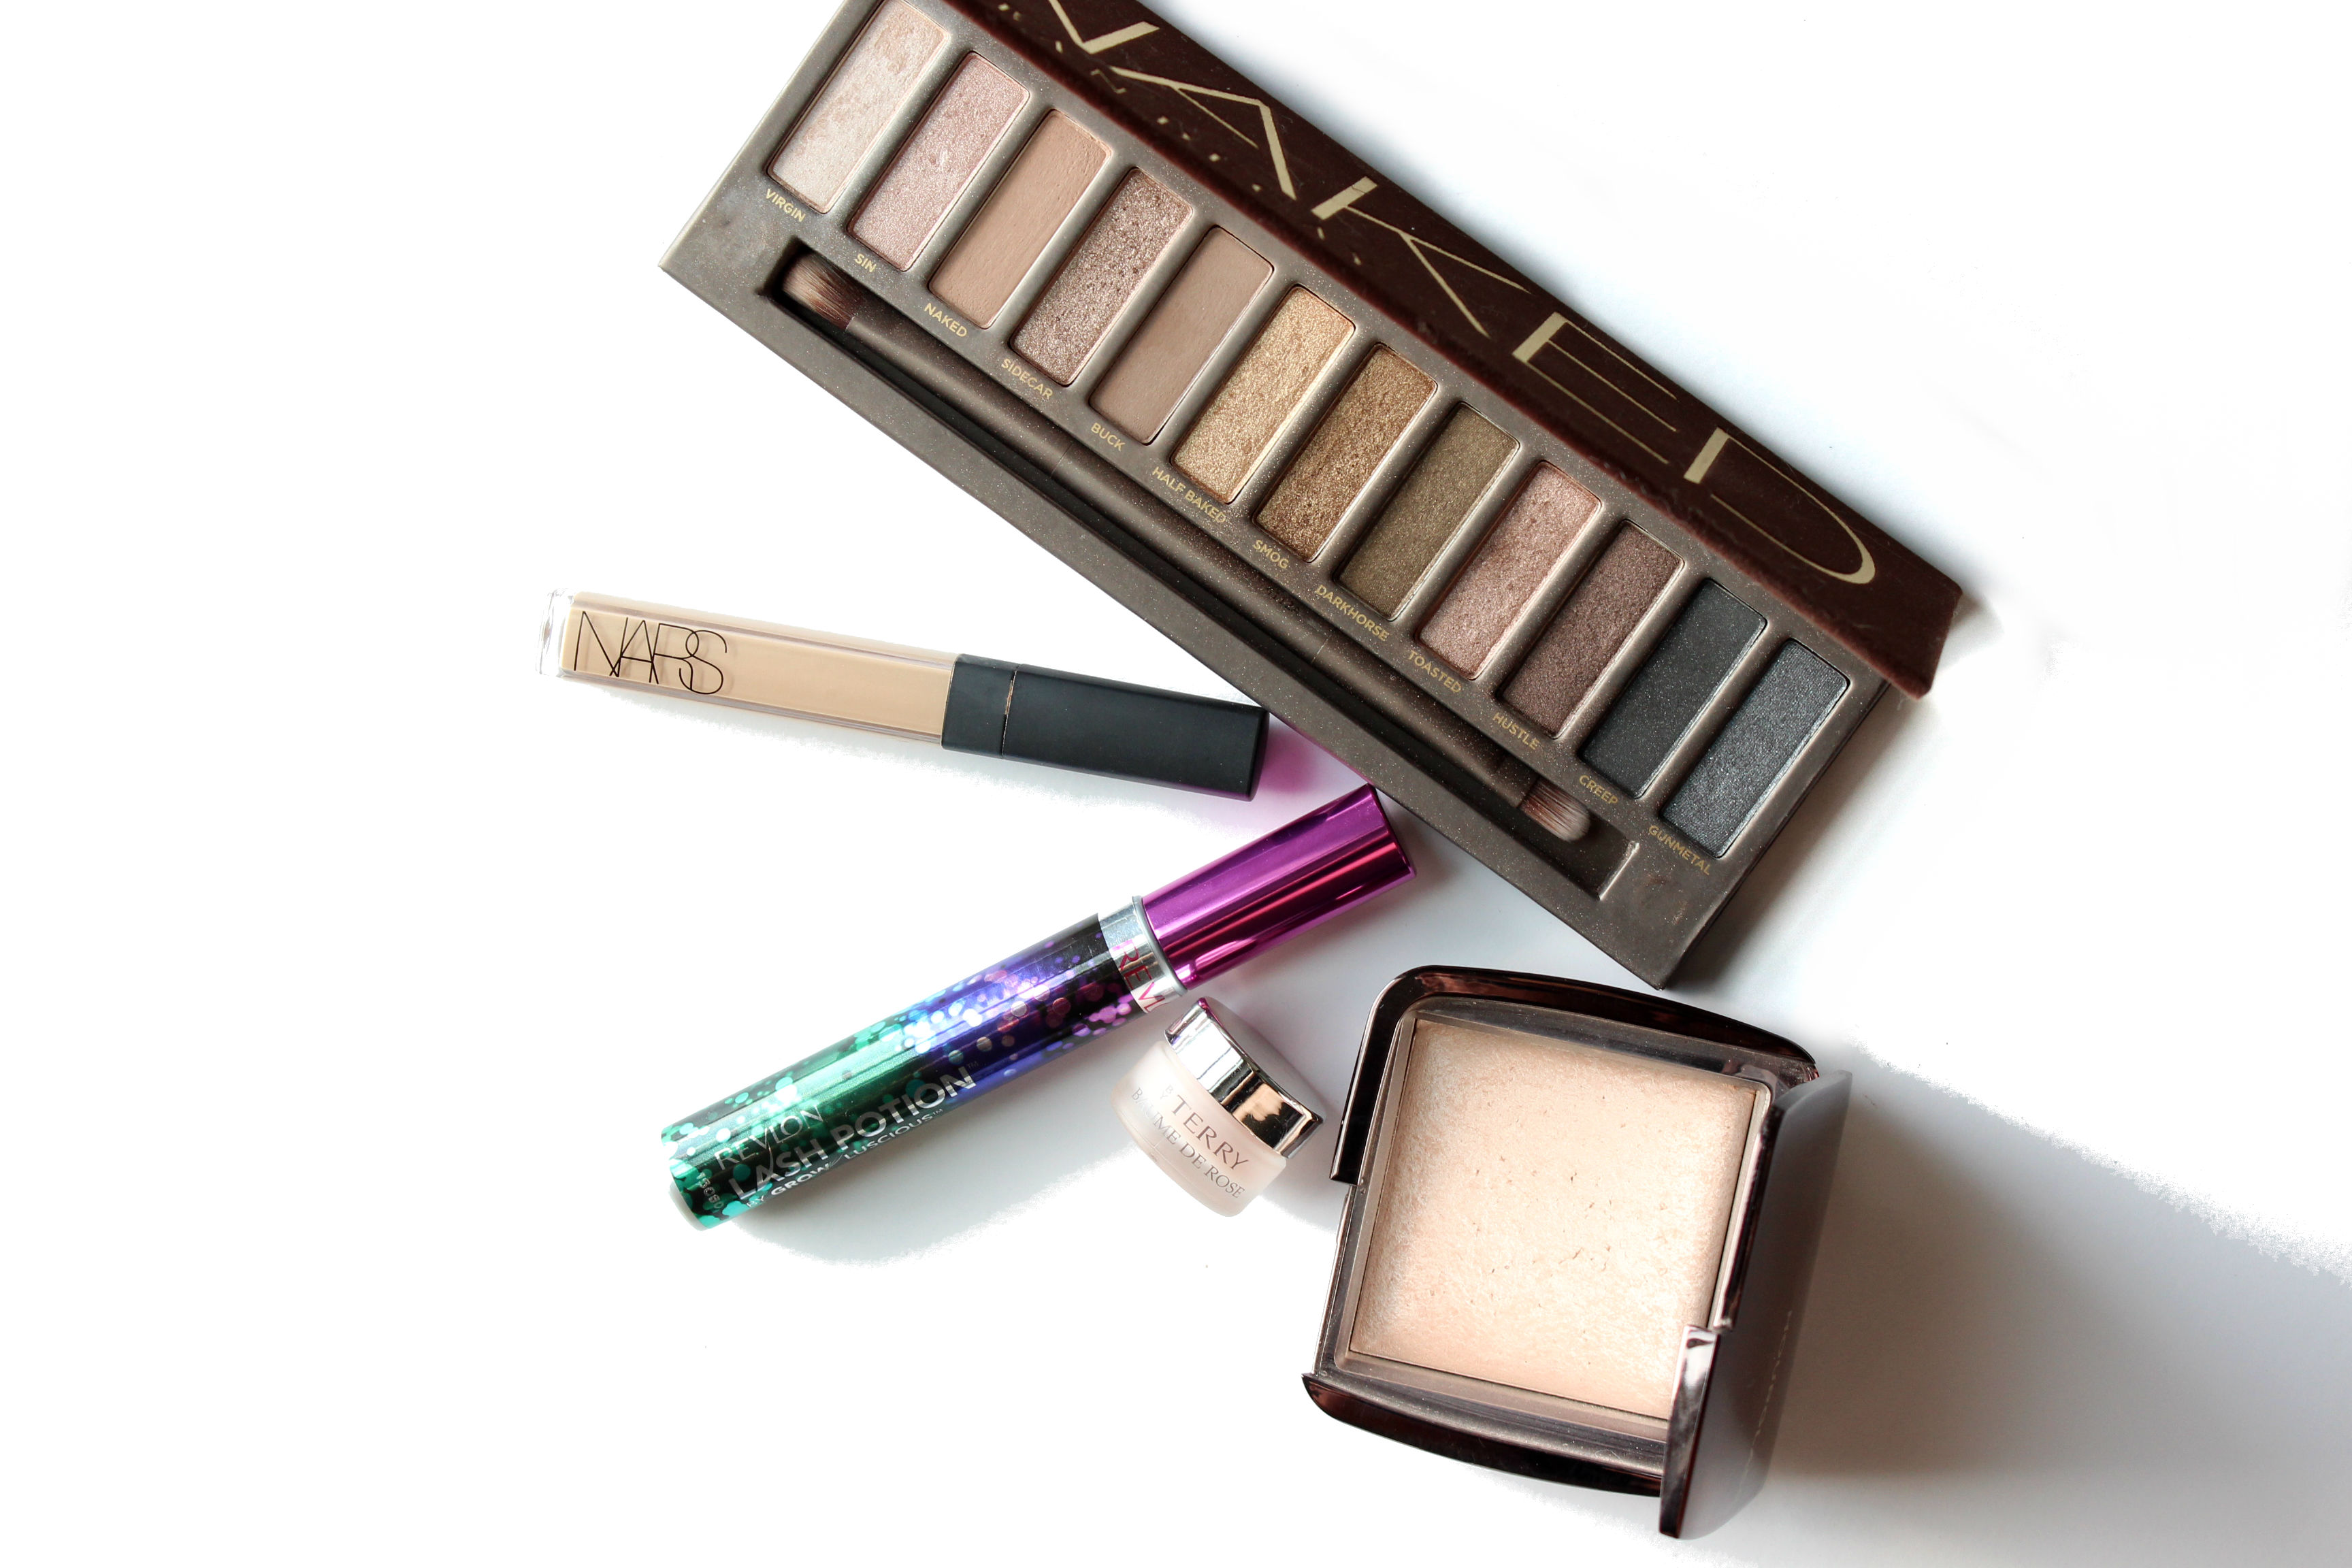 September 2015 Makeup Beauty Favorites Urban Decay Naked NARS Radiant Creamy Concealer Revlon Lash Potion byTerry Baume de Rose Hourglass Ambient Lighting Powder Luminous Light Brighterdarling.com